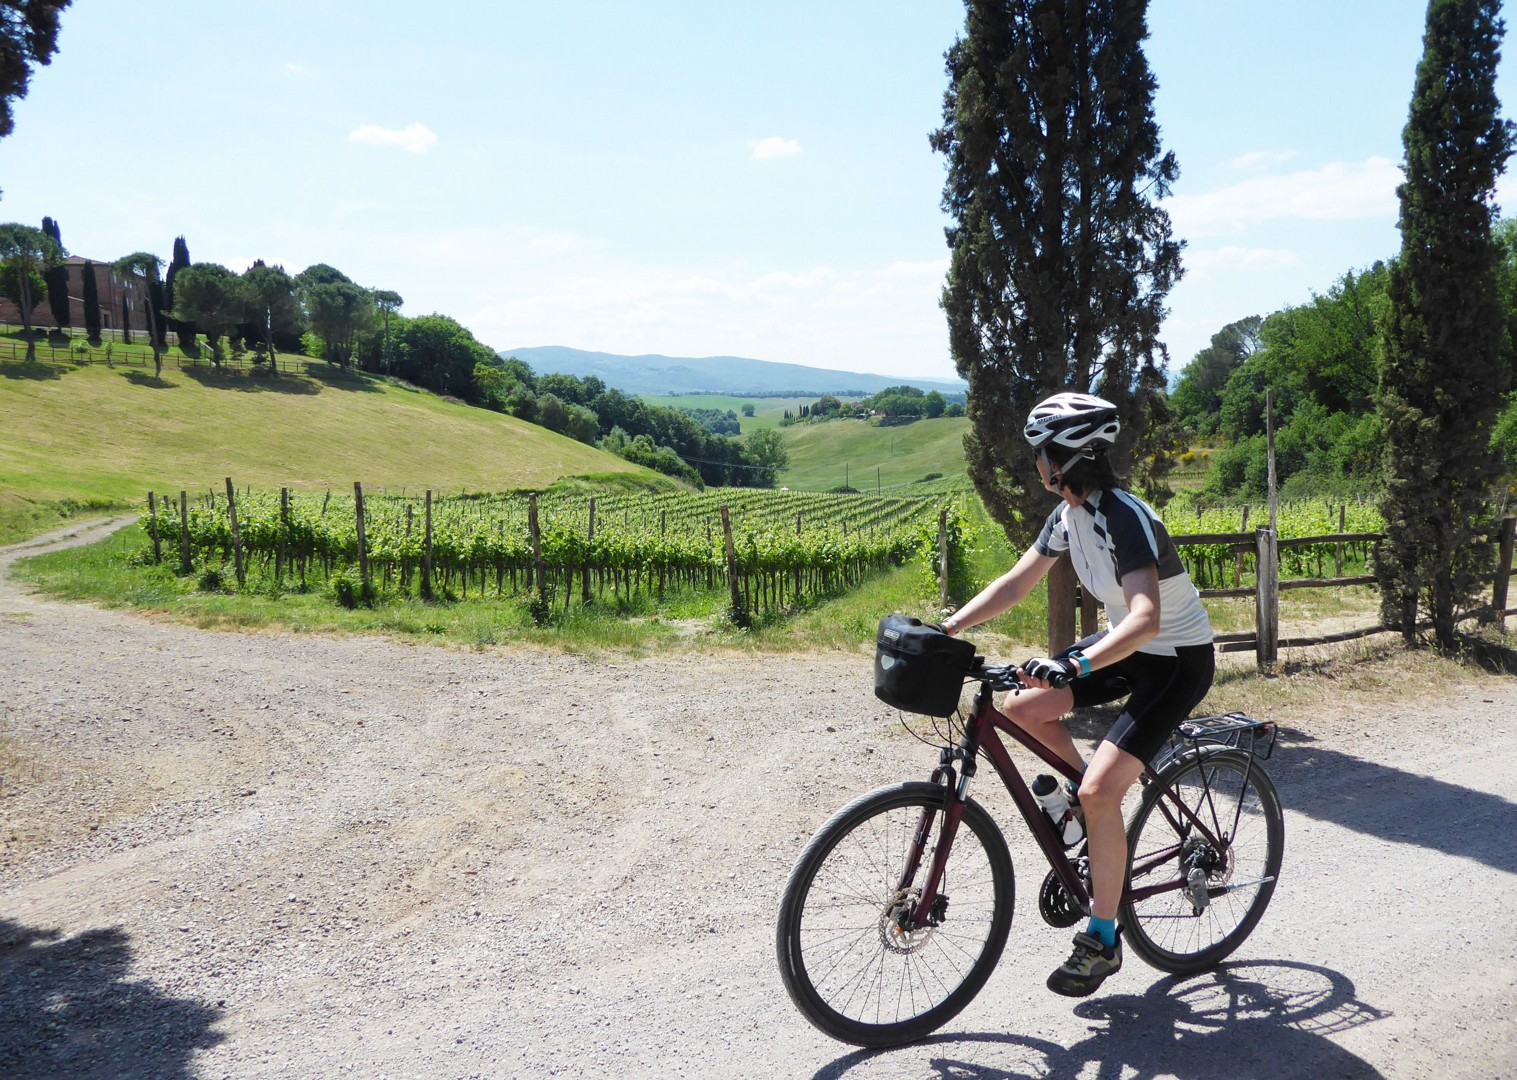 Guided-Leisure-Cycling-Holiday-Italy-Via-Francigena-Tuscany-to-Rome-stop-and-enjoy-the-view - Italy - Via Francigena (Tuscany to Rome) - Guided Leisure Cycling Holiday - Leisure Cycling